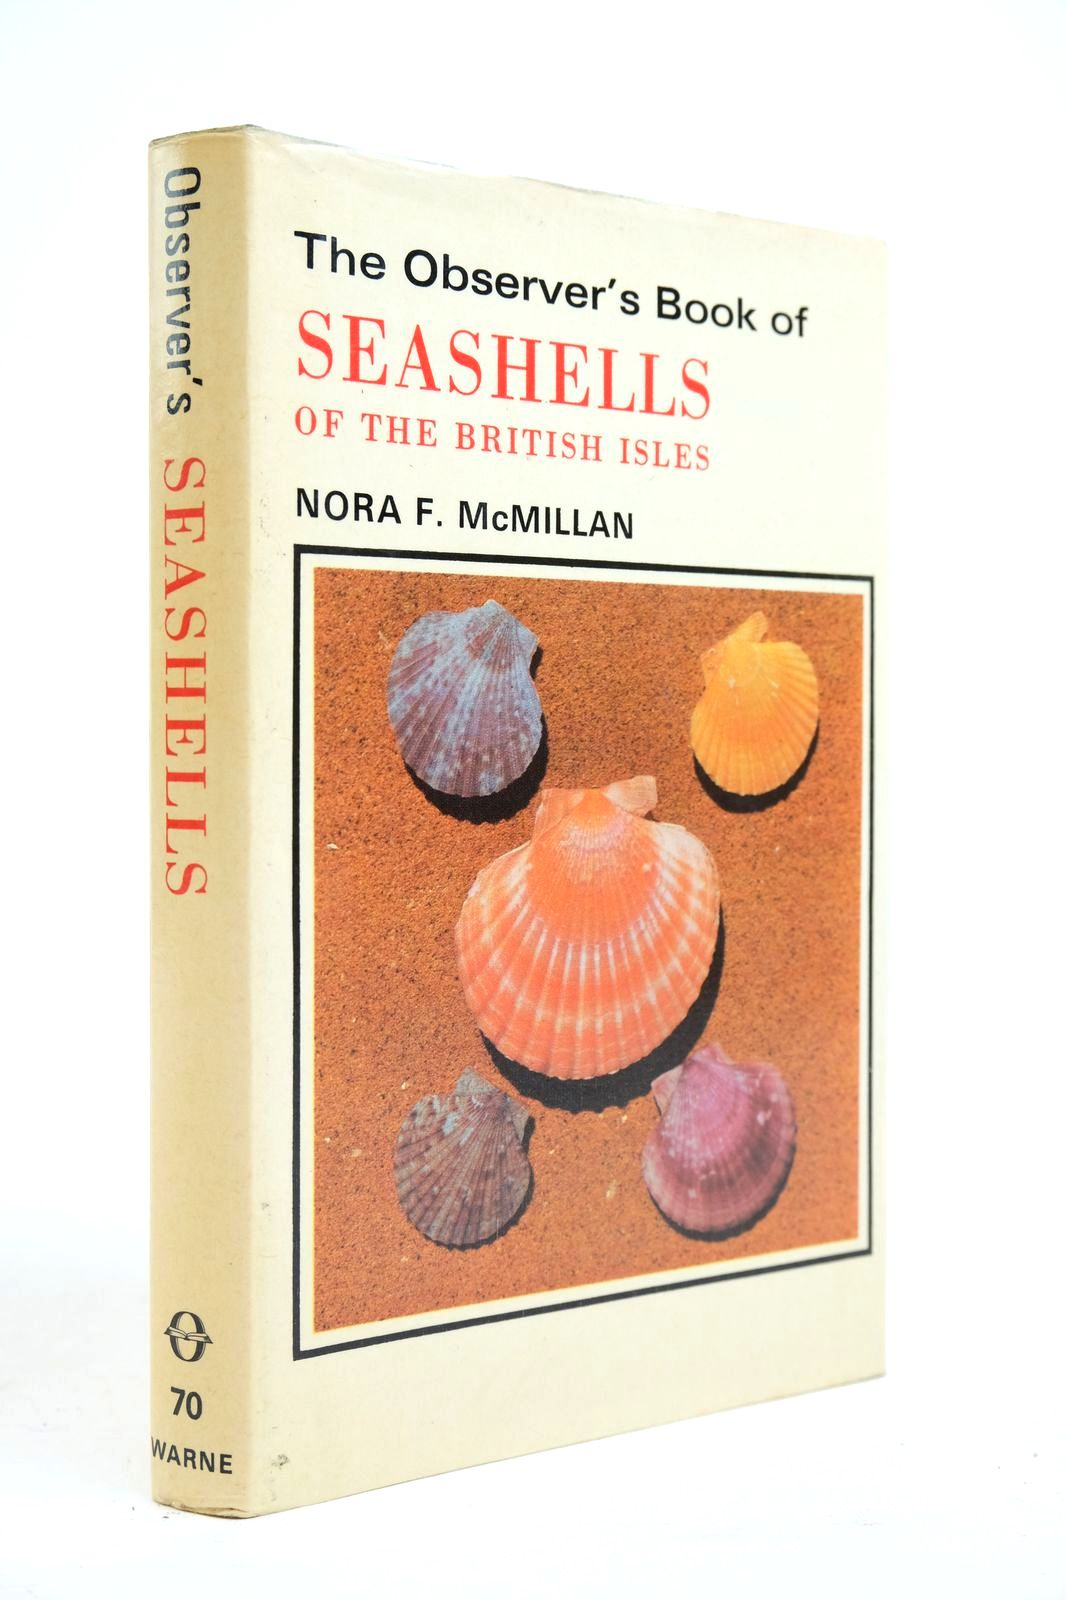 Photo of THE OBSERVER'S BOOK OF SEASHELLS OF THE BRITISH ISLES- Stock Number: 2134659